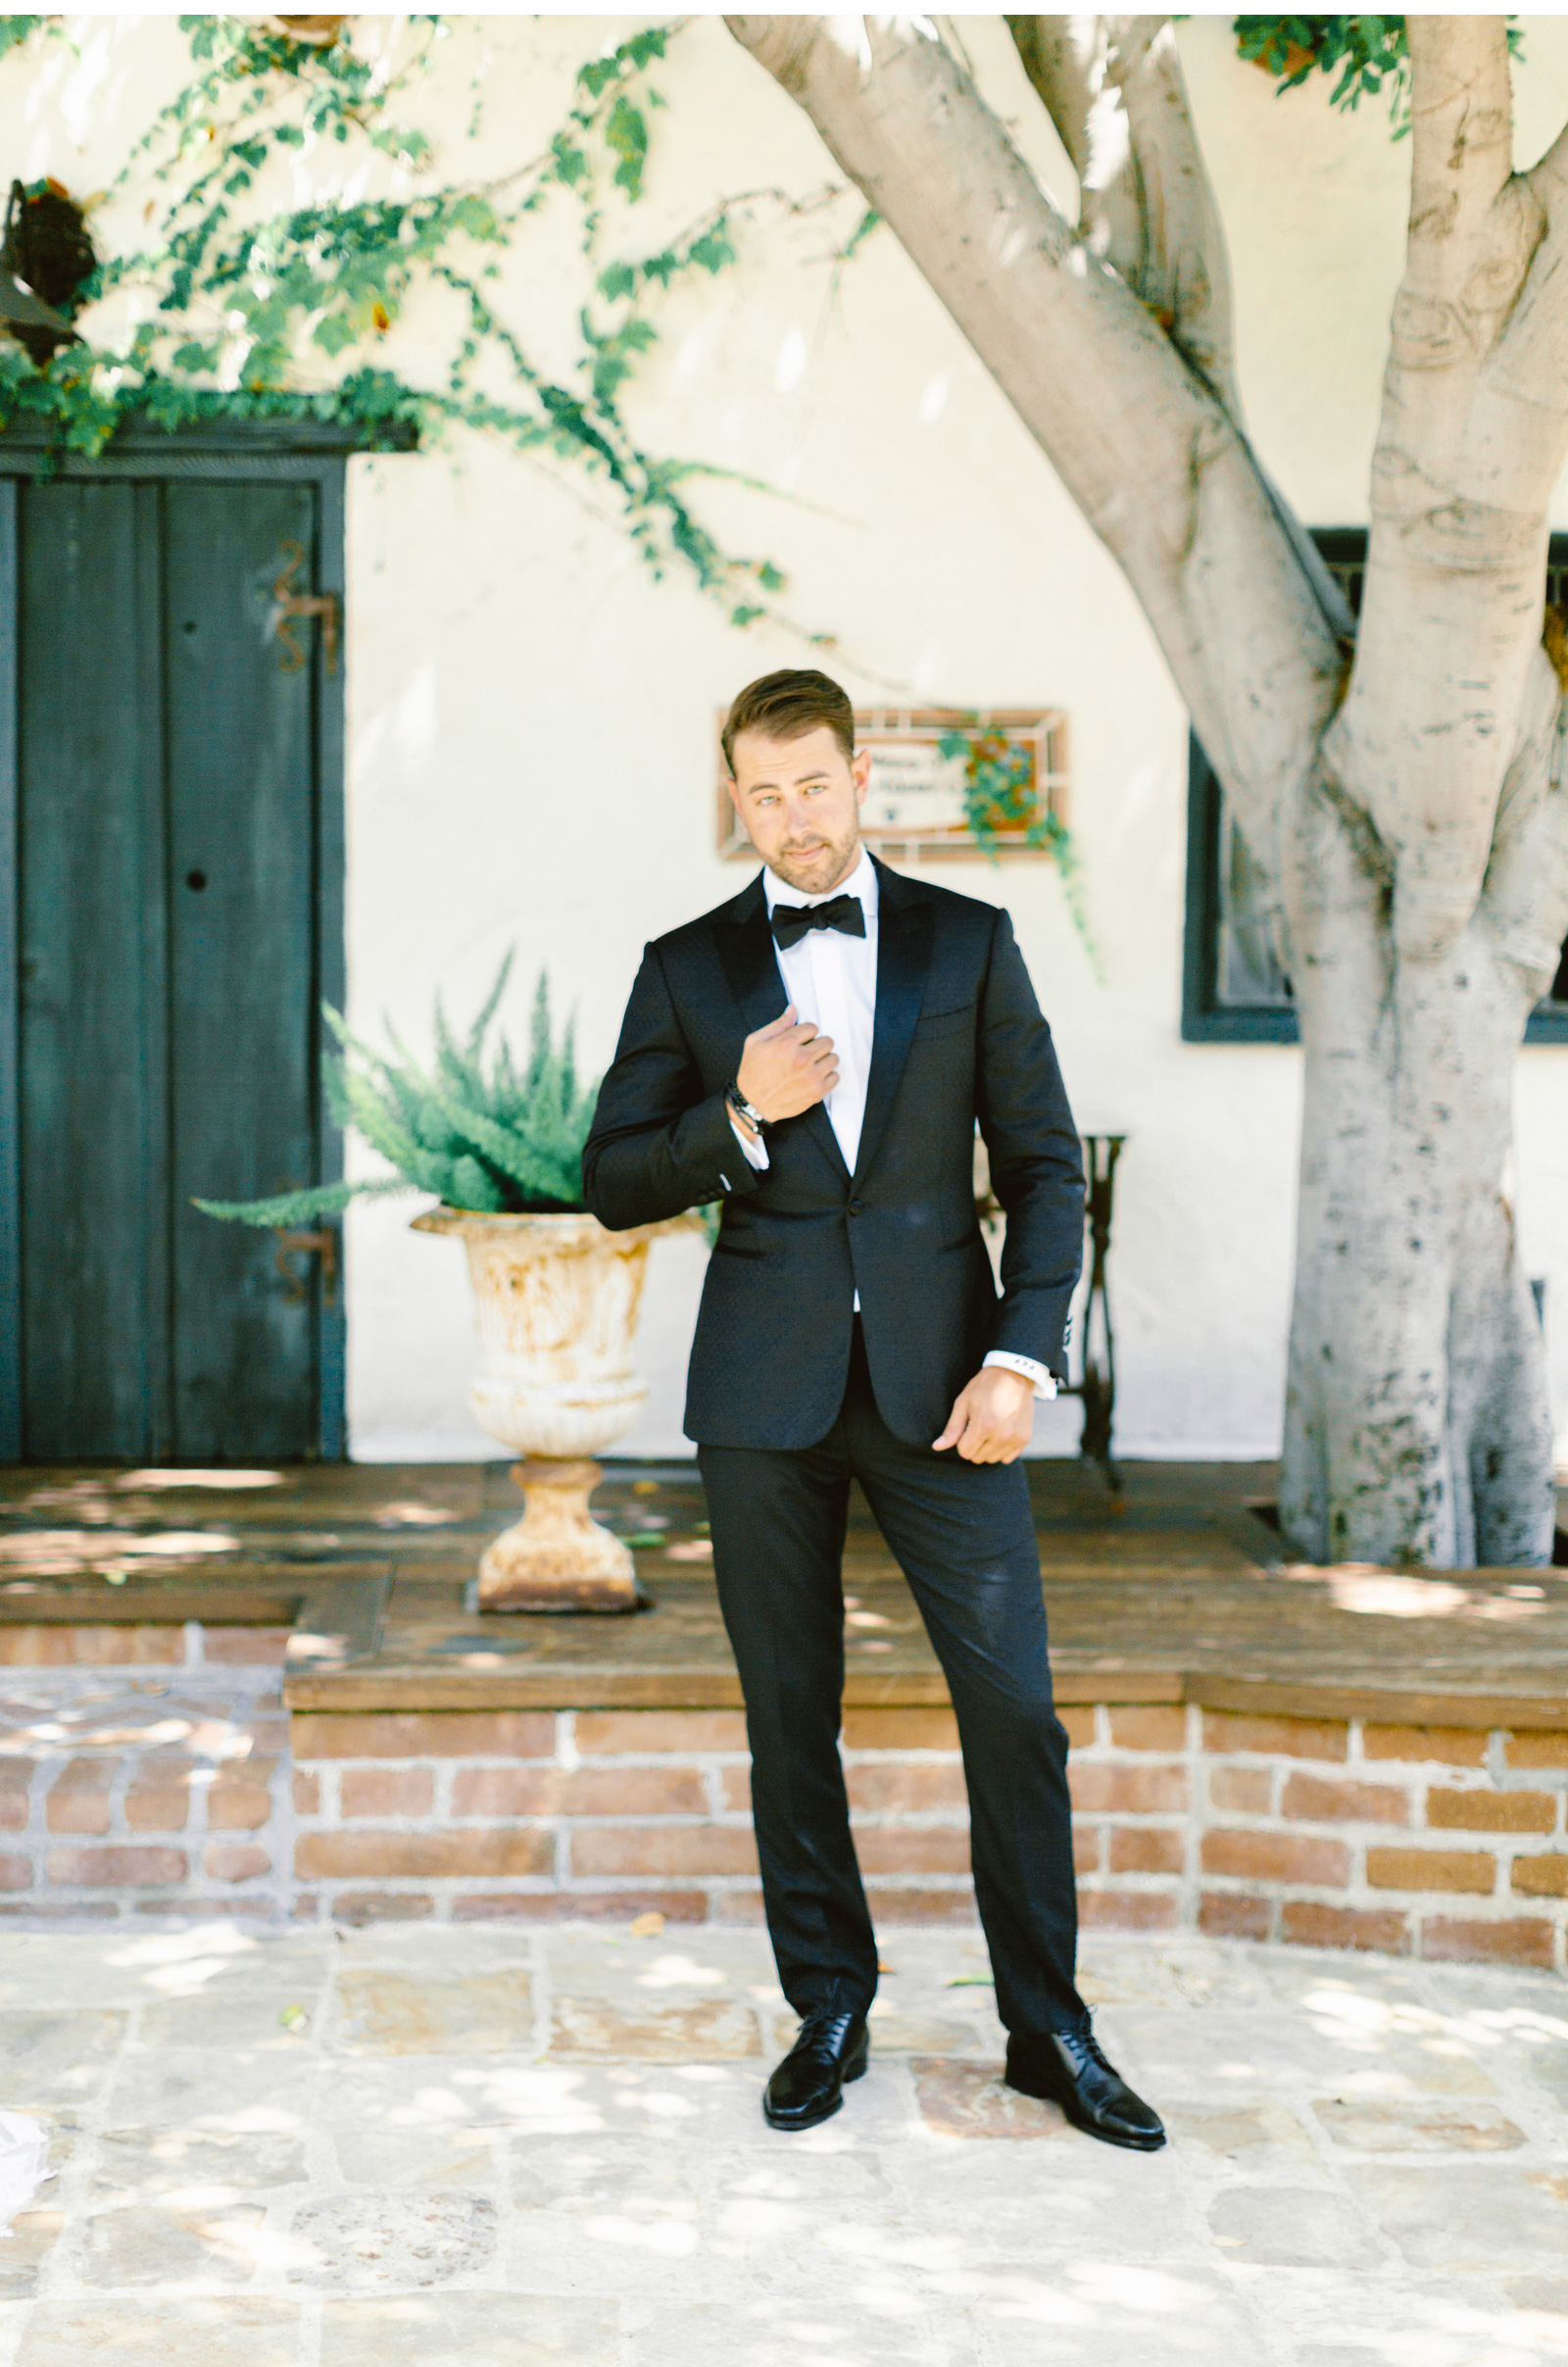 Saddle-Rock-Ranch-Photographer-Malibu-Weddings-San-Juan-Capistrano-Wedding-Venue-Natalie-Schutt-Photography_07.jpg